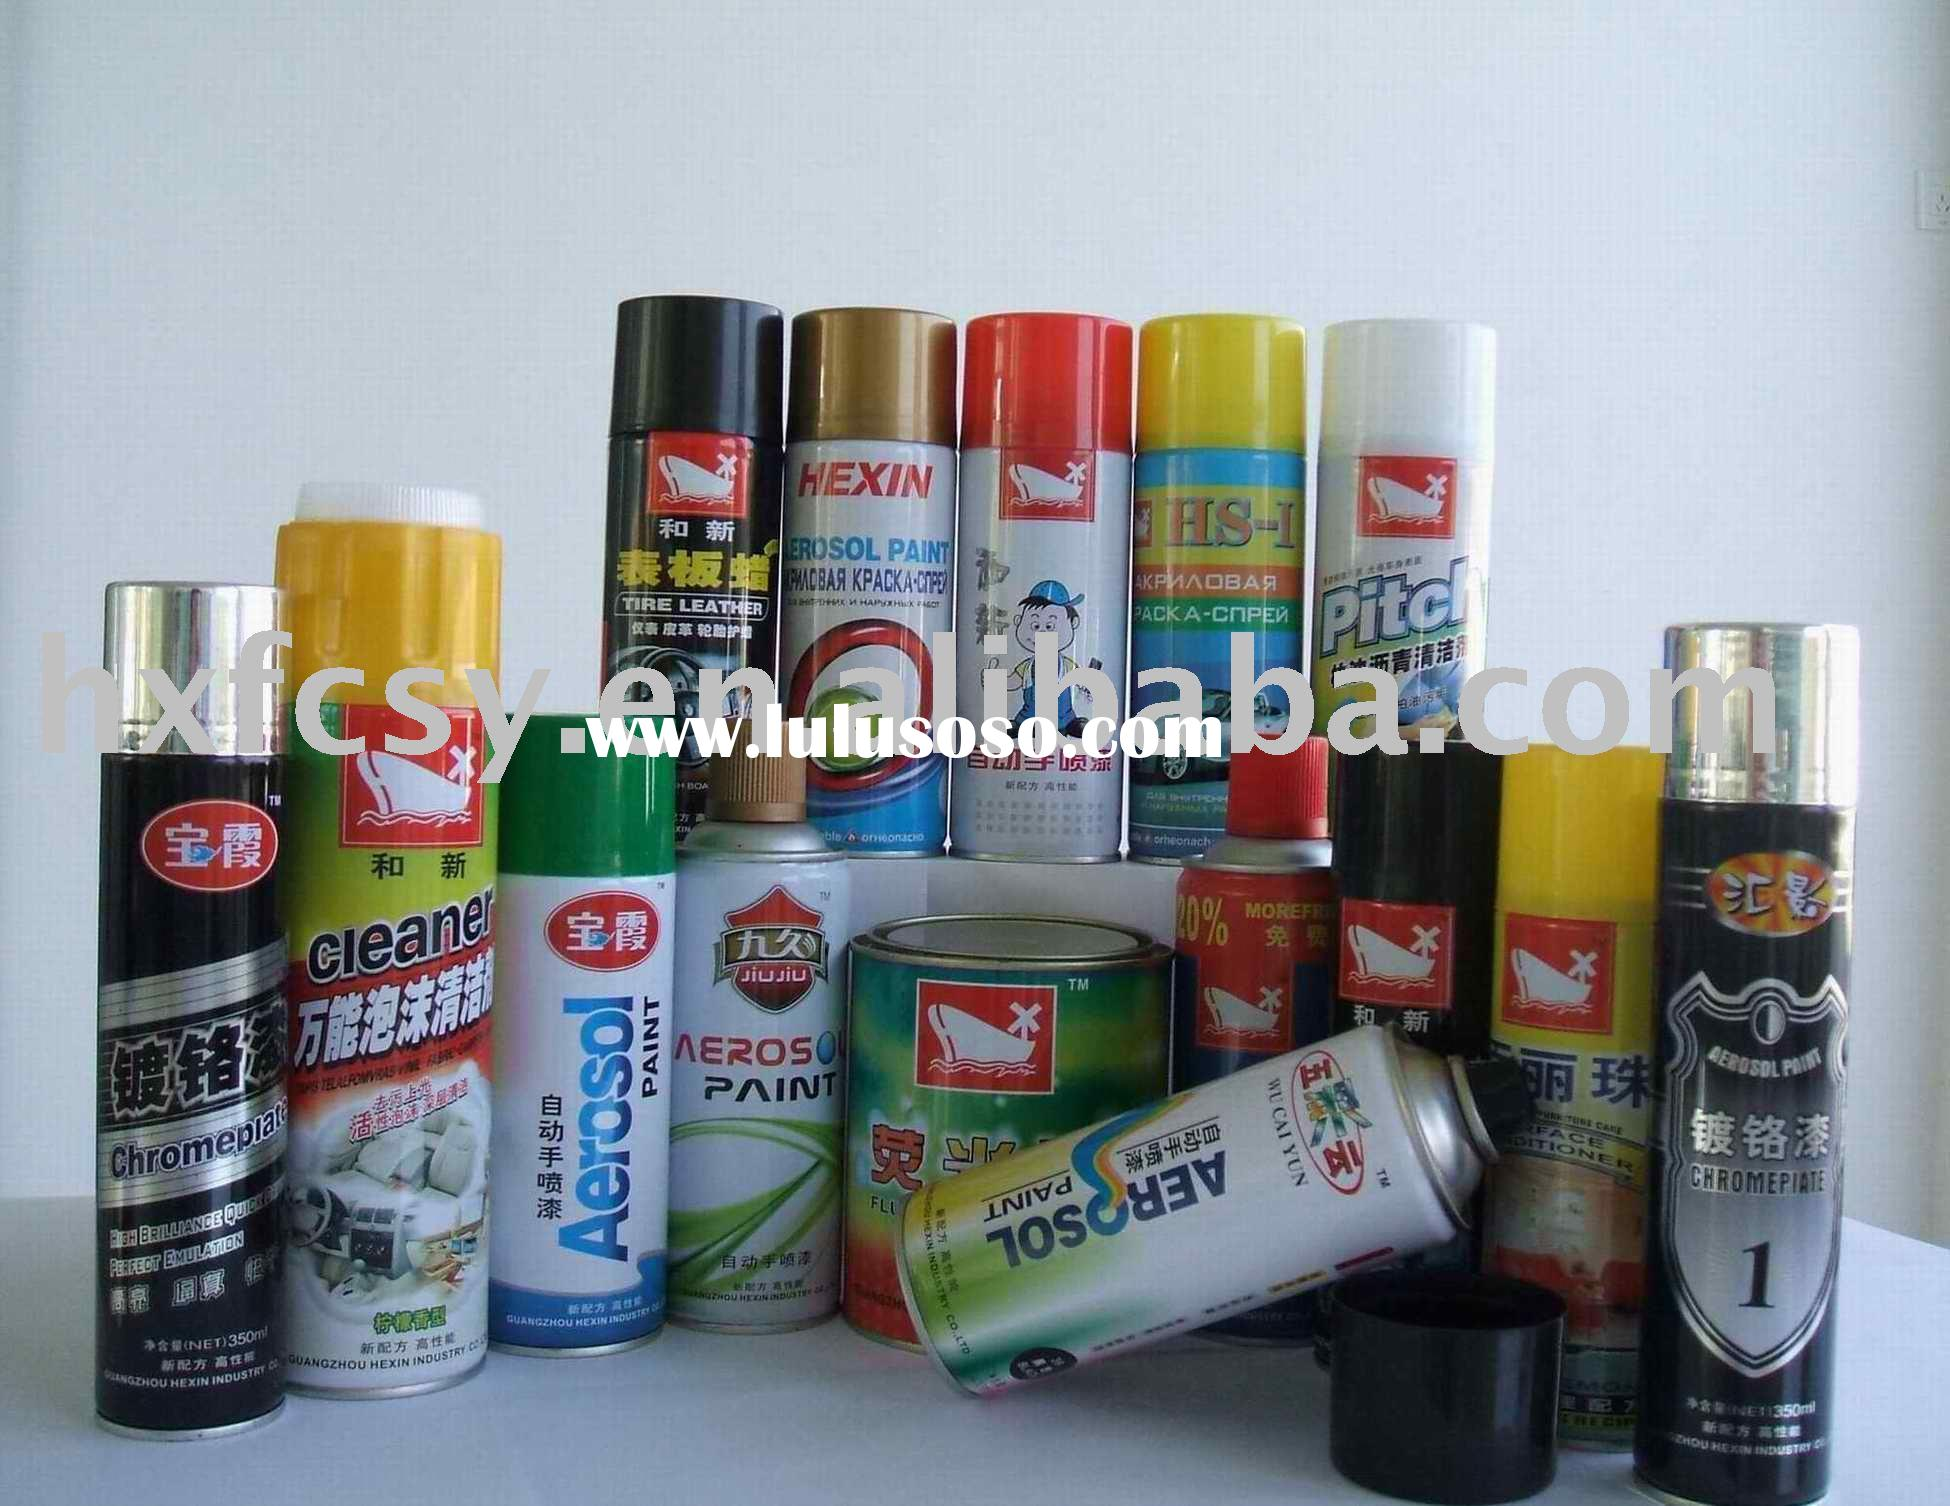 aerosol paint,spray paint,metallic paint,chrome paint,car paint